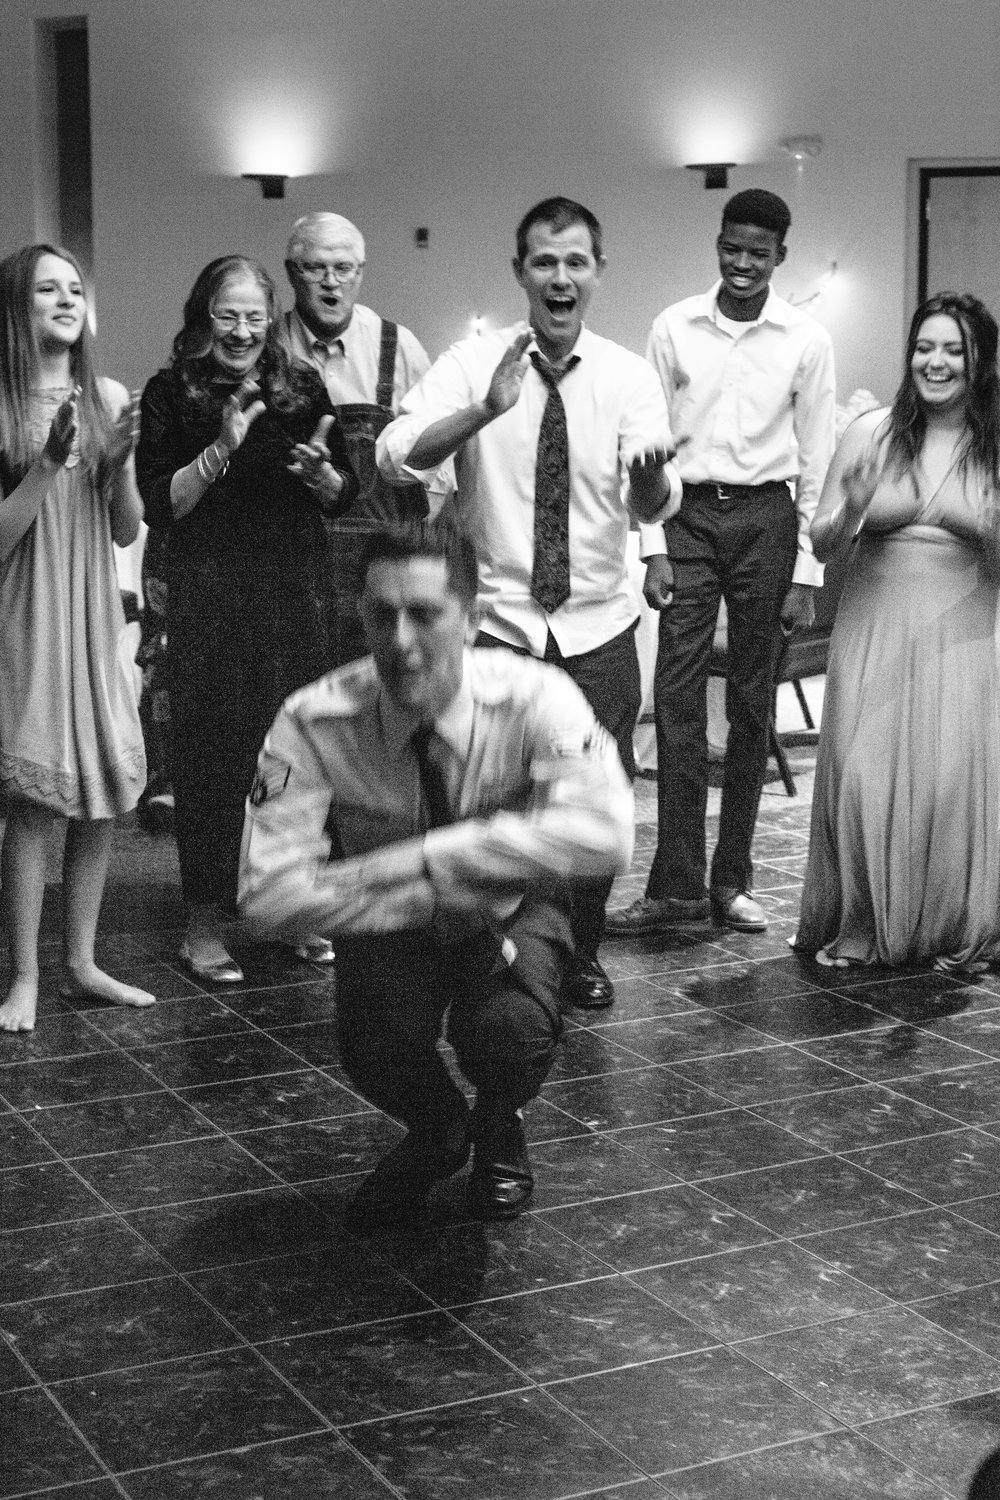 Looking at the faces surrounding the key dancers is one of my favorite wedding games.